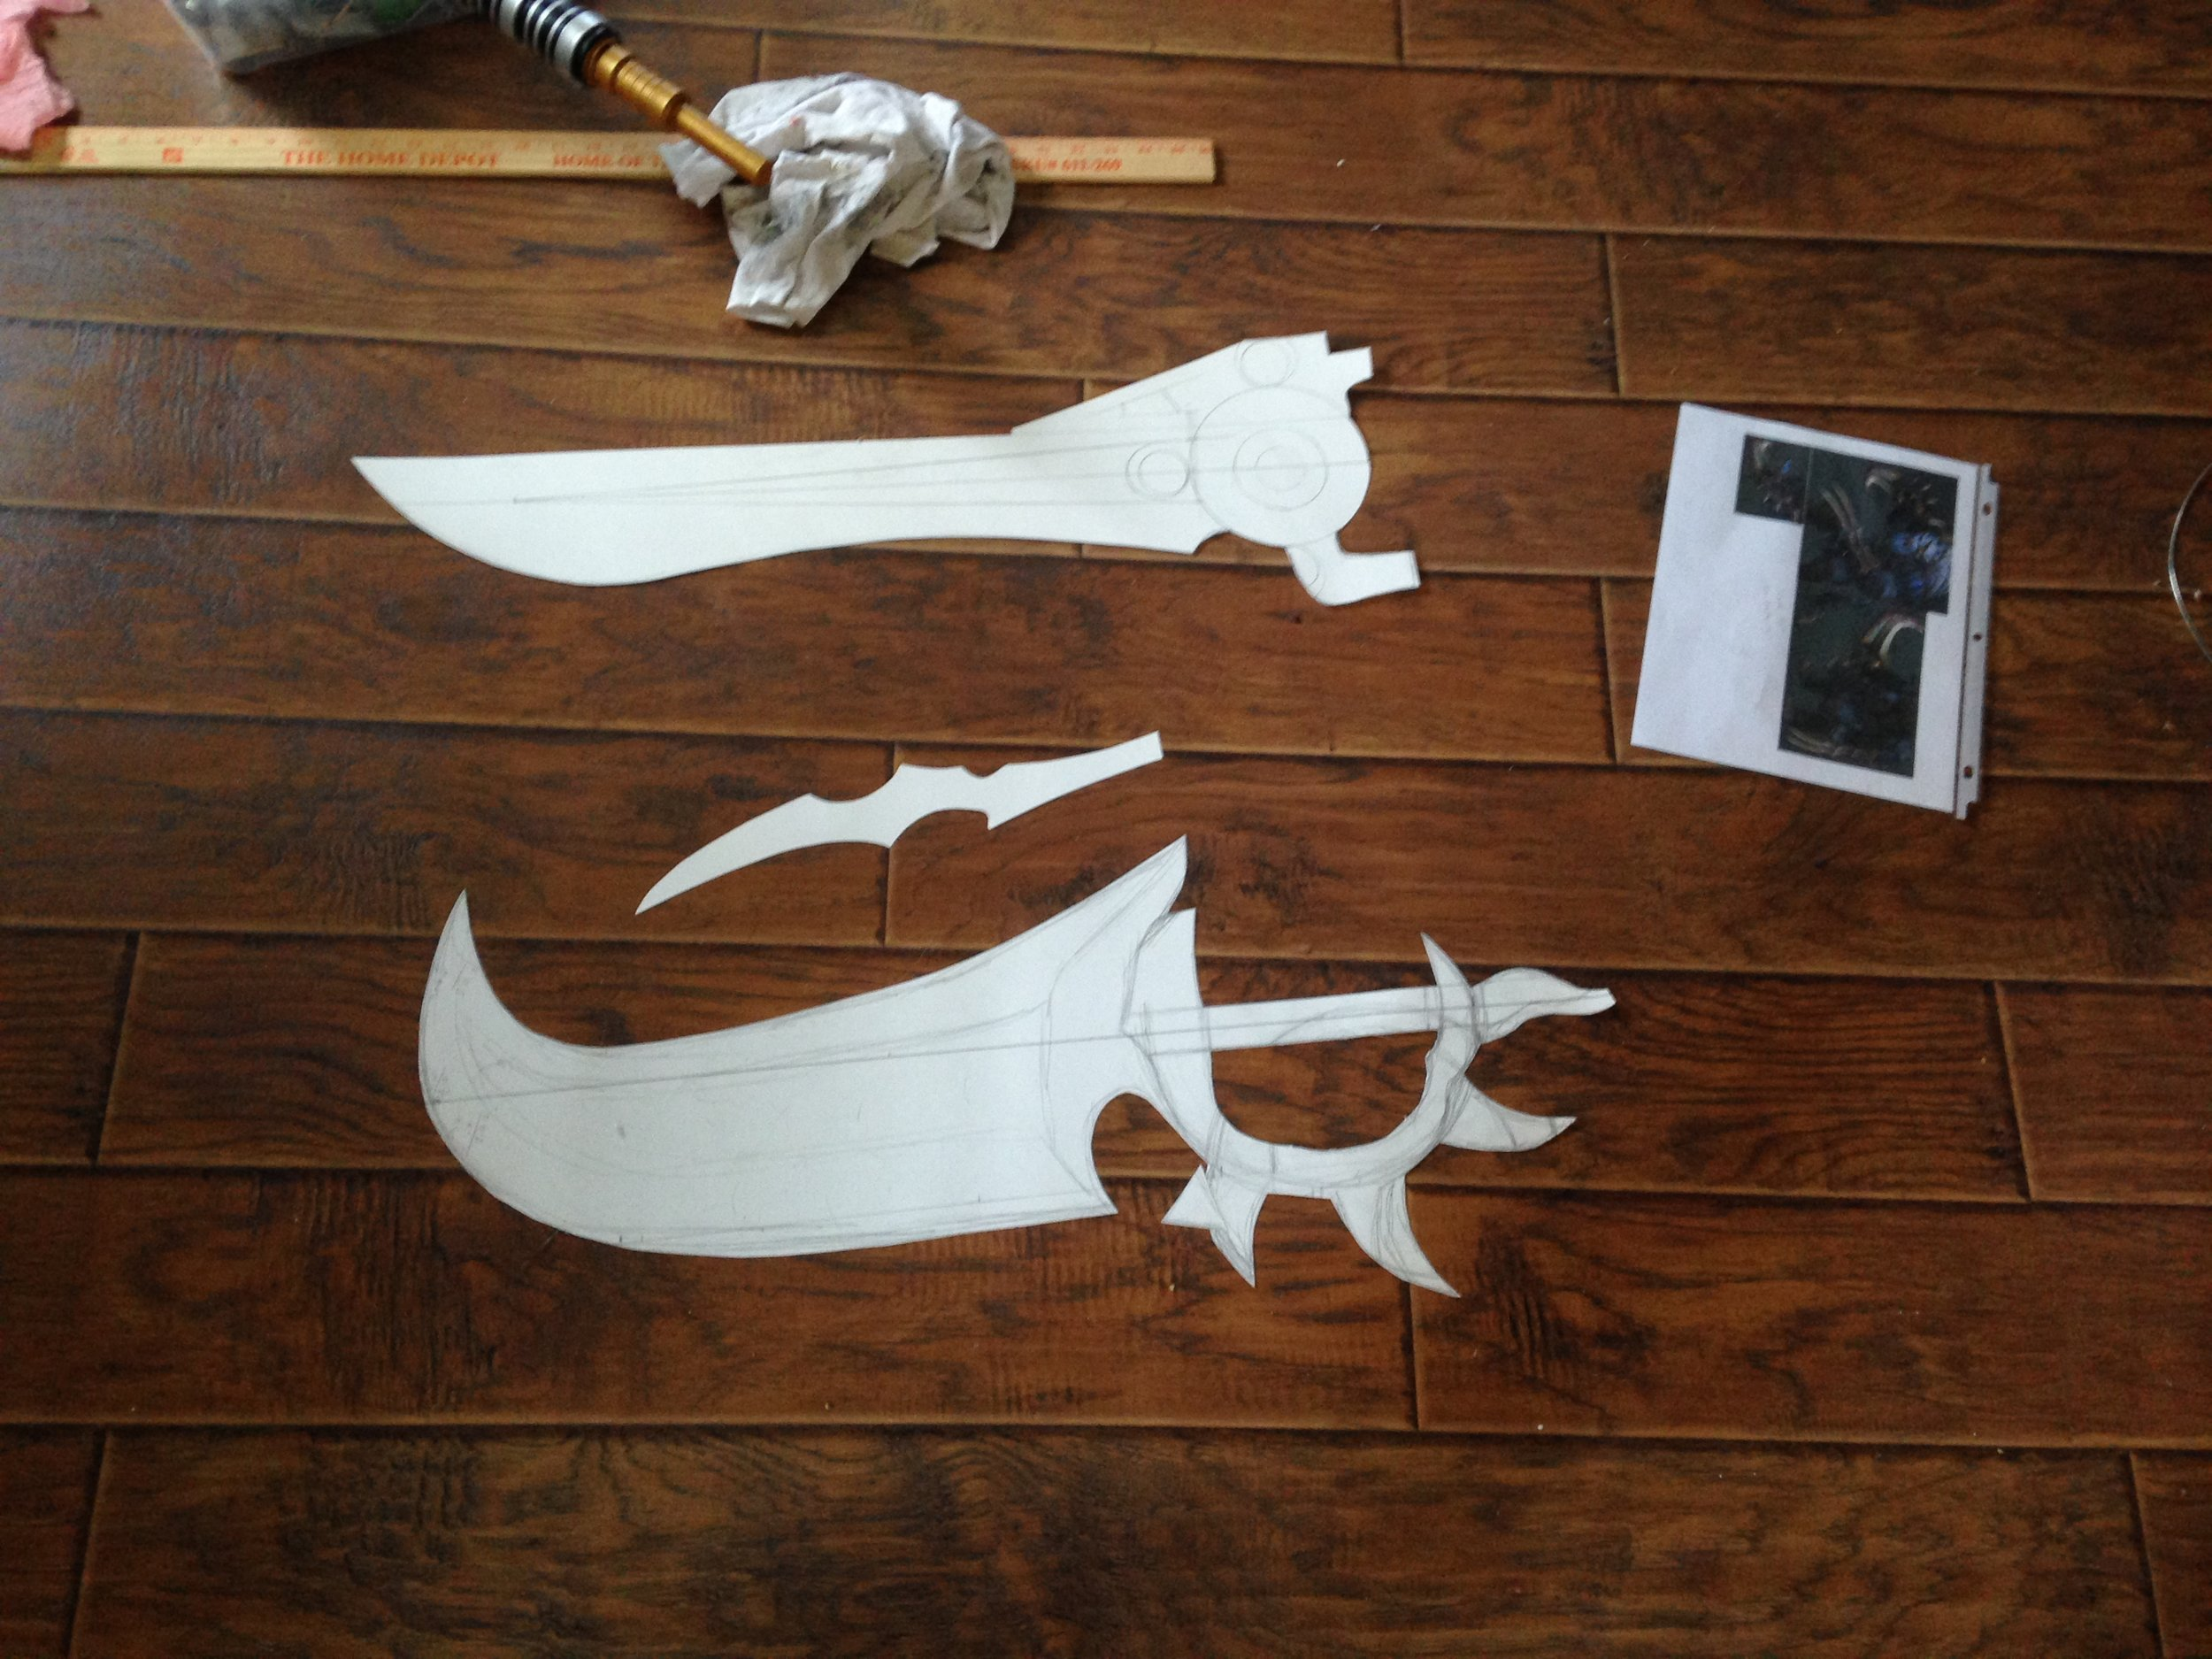 Here are the patterns for the blades (along with the engine sword I built. You'll get to see that later.